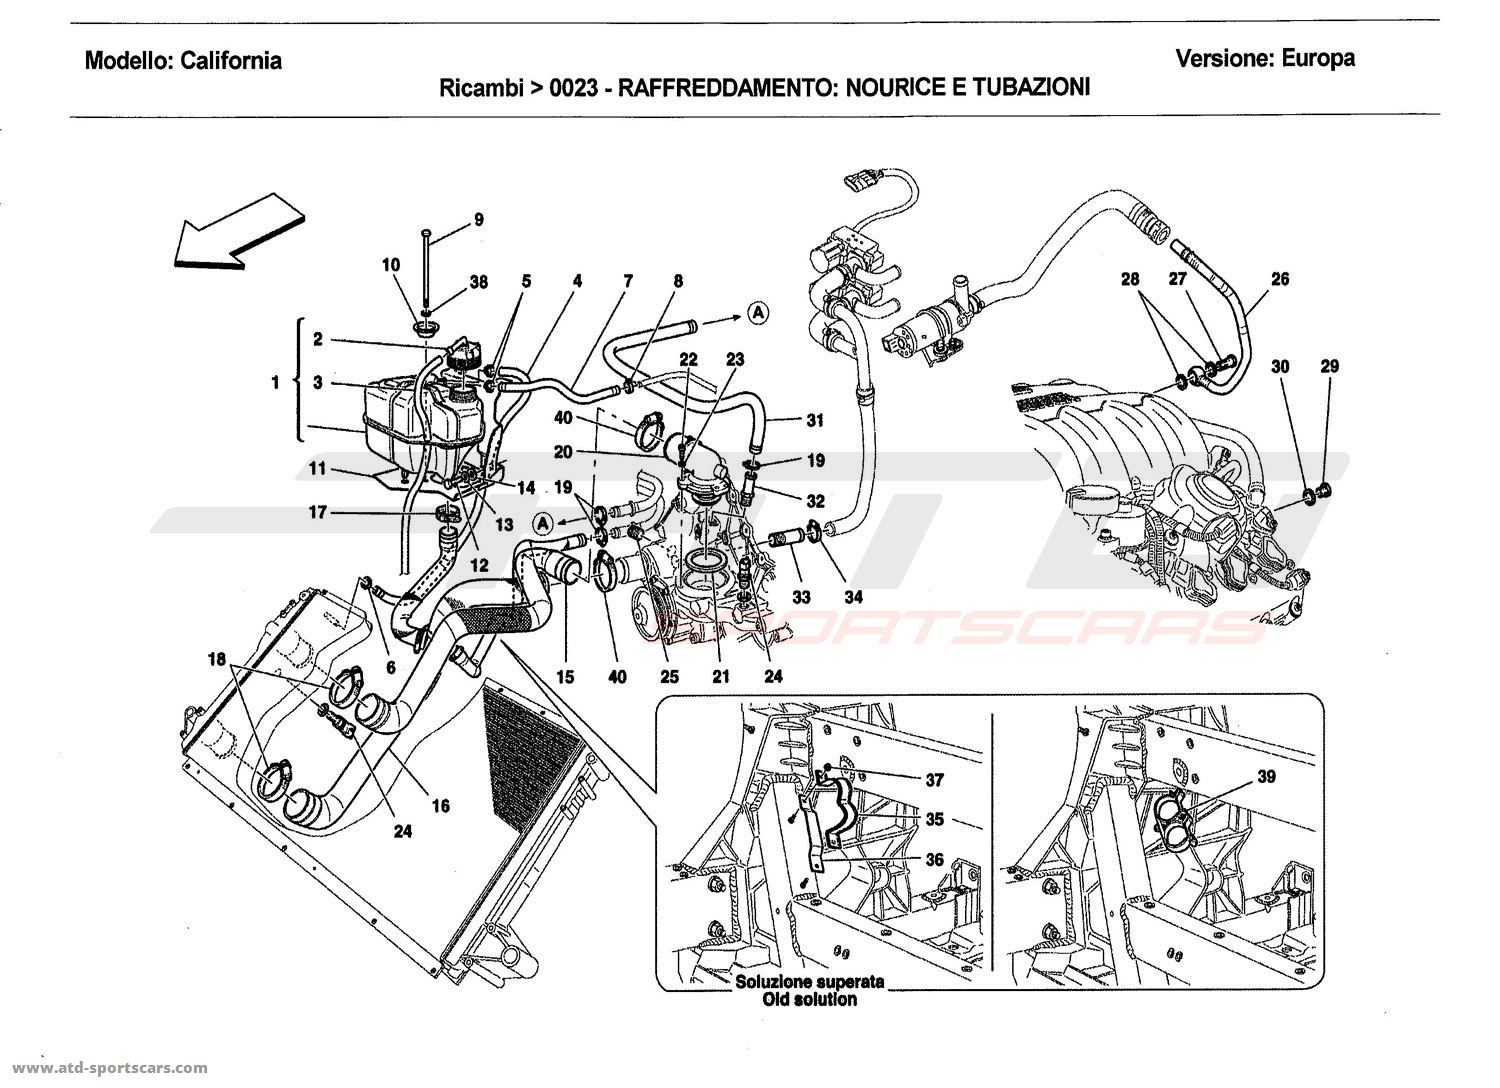 COOLING: HEADER TANK AND PIPES